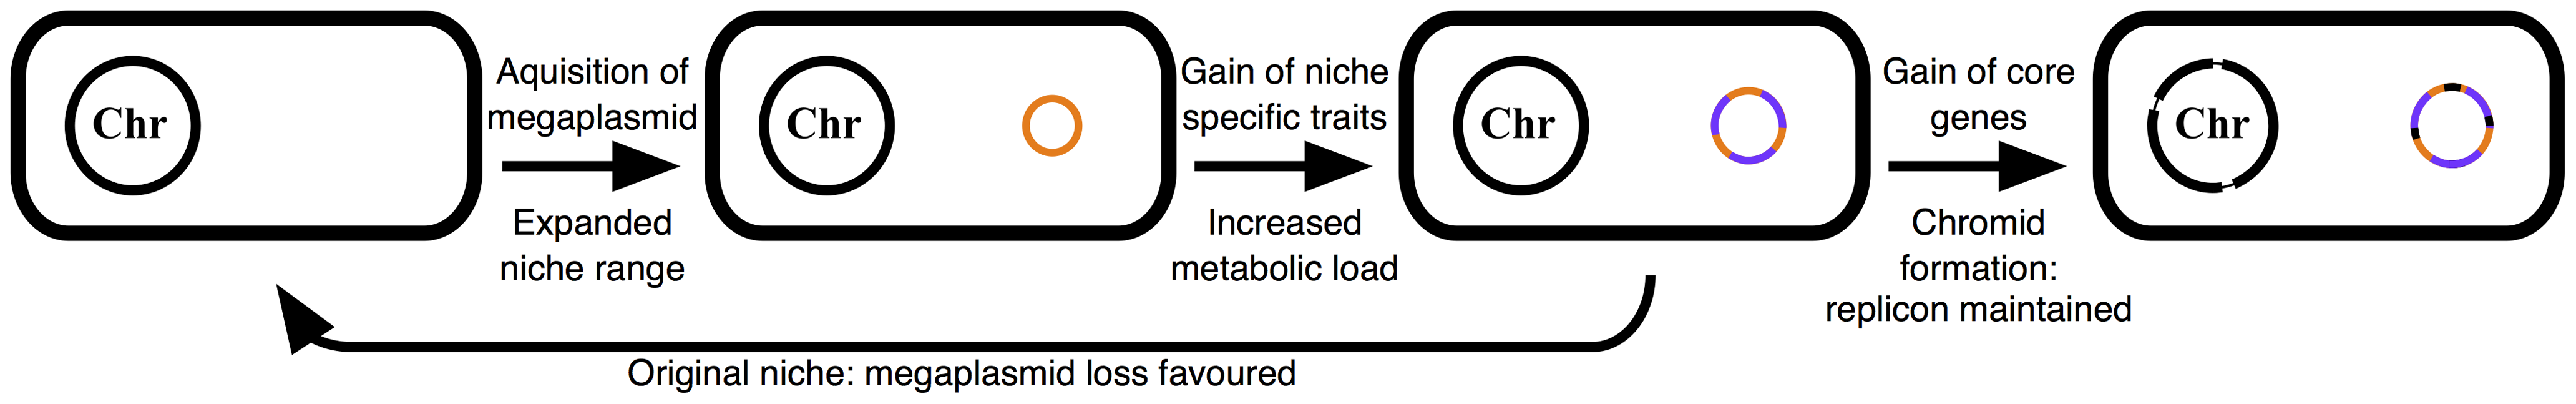 Schematic illustrating the described model of multipartite genome evolution and chromid formation.